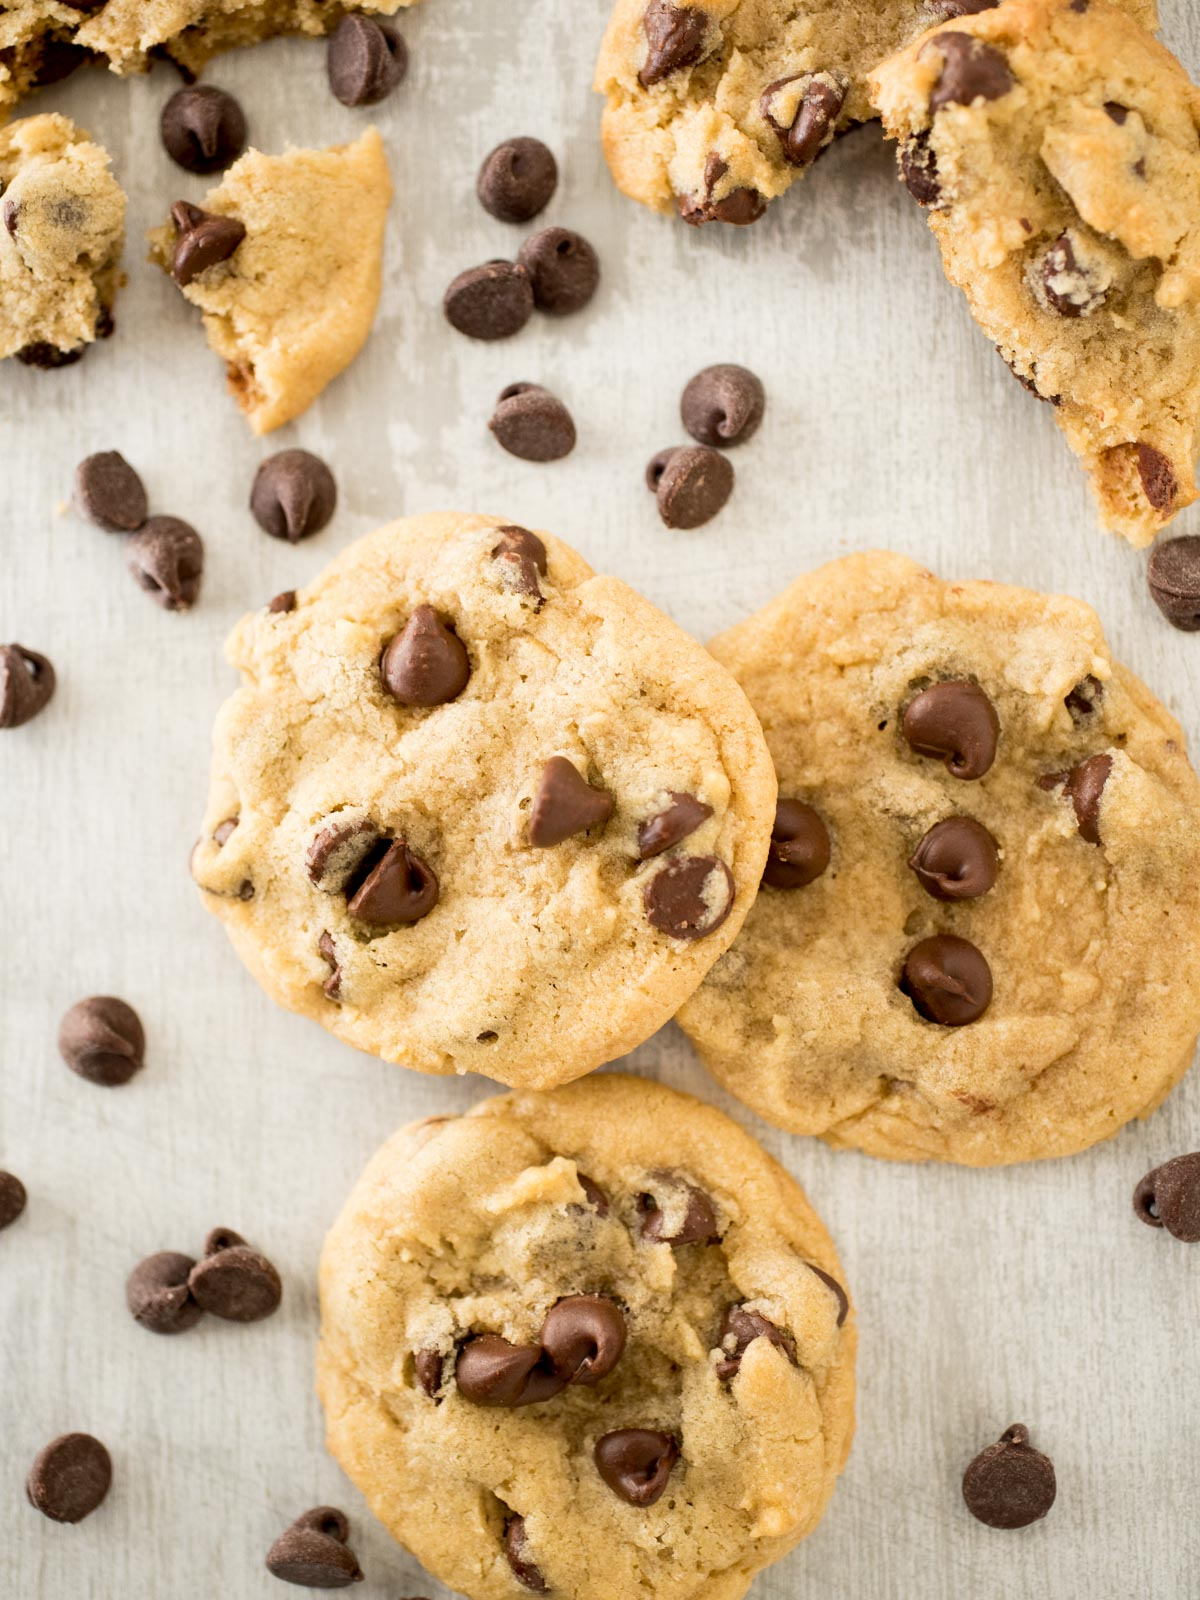 stack of chocolate chip cookies surrounded by chocolate chips